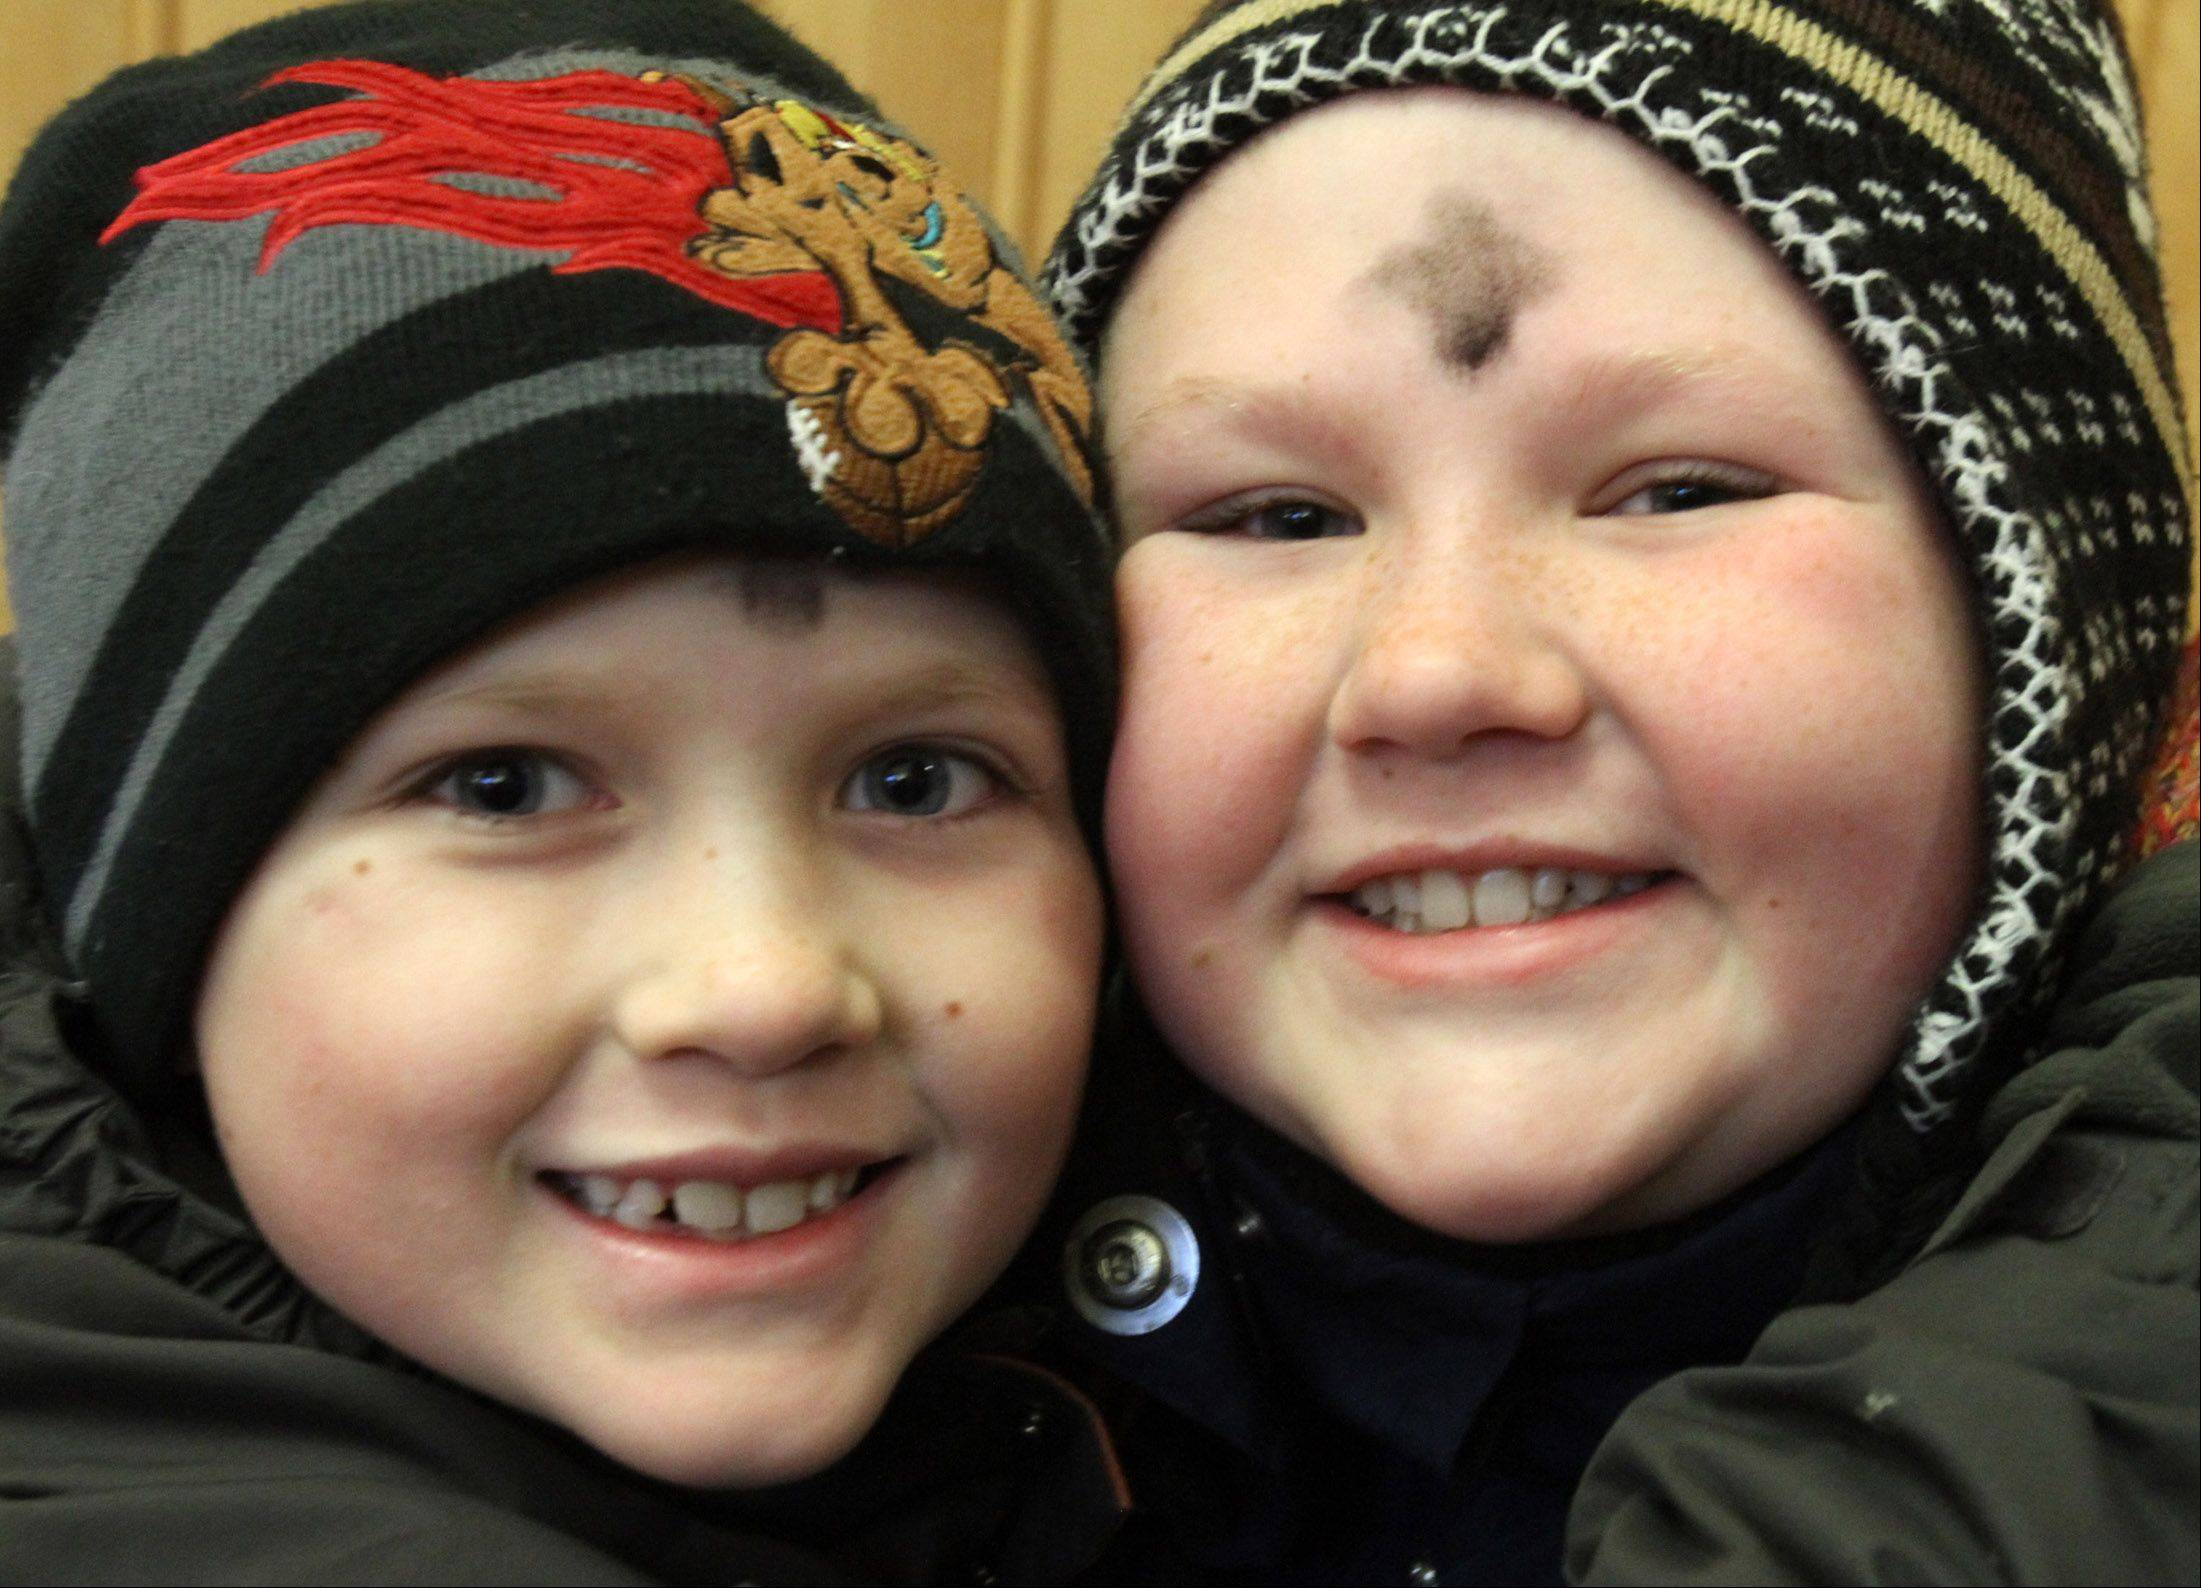 Sean Cunningham, 8, left, and his sister Erin, 11, both of Arlington Heights volunteered to help the Rev. Terry Keehan of Holy Family Catholic Community Church in Inverness give commuters ashes for Ash Wednesday at the Palatine train station.